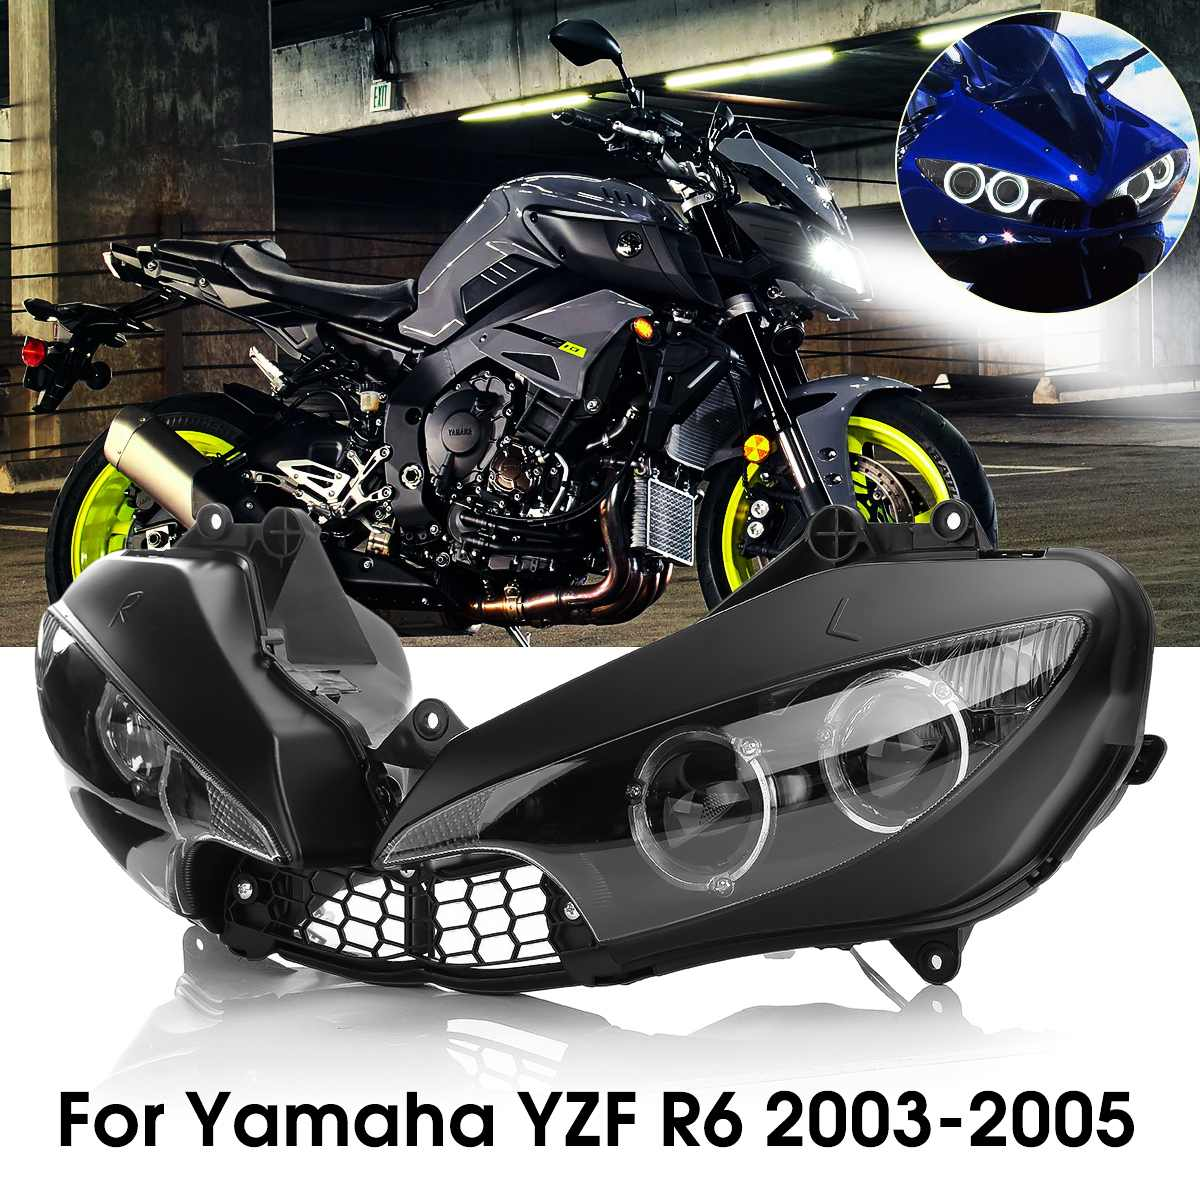 For 2003-2005 for Yamaha Yzfr6 Yzf R6 Yzf-R6 Motorcycle Front Headlight Head Light Lamp Headlamp Clear 2003 2004 2005 StylingFor 2003-2005 for Yamaha Yzfr6 Yzf R6 Yzf-R6 Motorcycle Front Headlight Head Light Lamp Headlamp Clear 2003 2004 2005 Styling